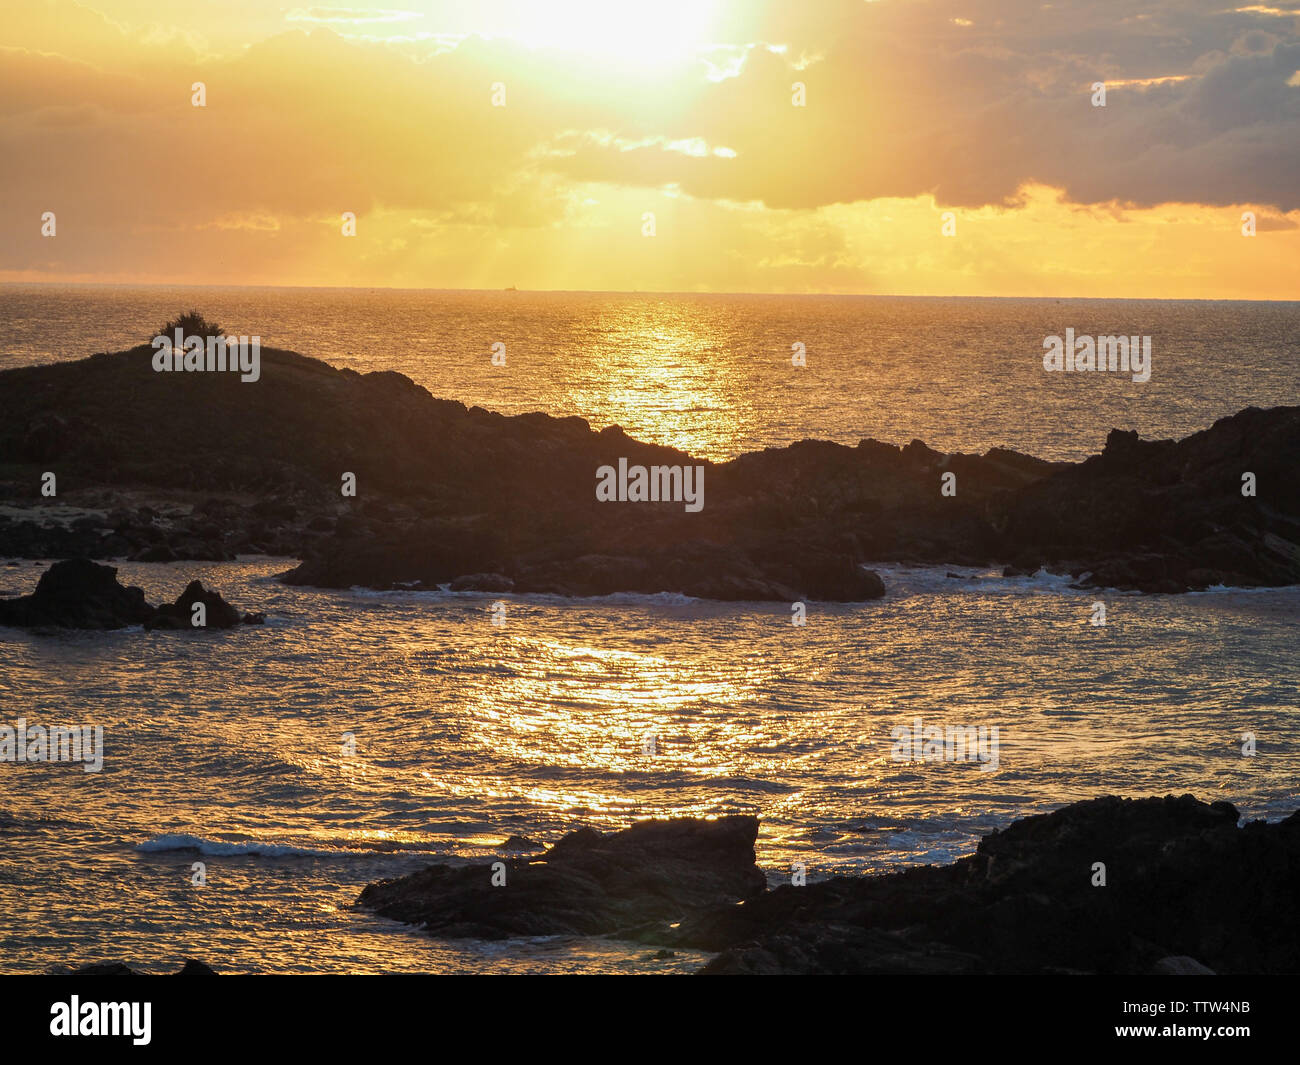 Glorious Sawtell Sunrise over the Pacific Ocean, Australia - Stock Image